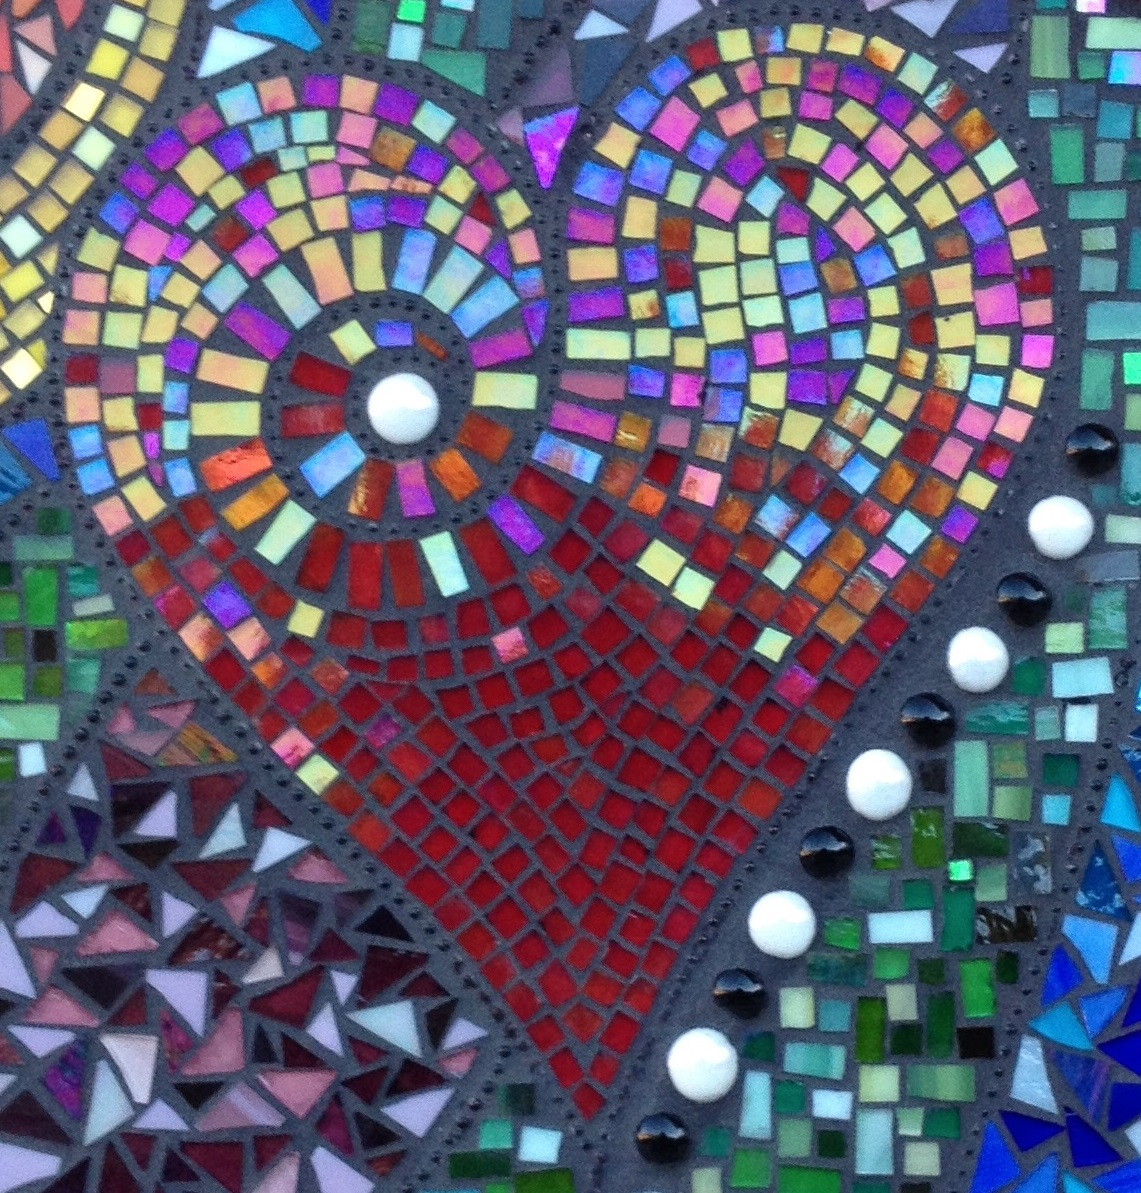 mosaic templates for kids - free online mosaic art beginners guide mosaic tile mania